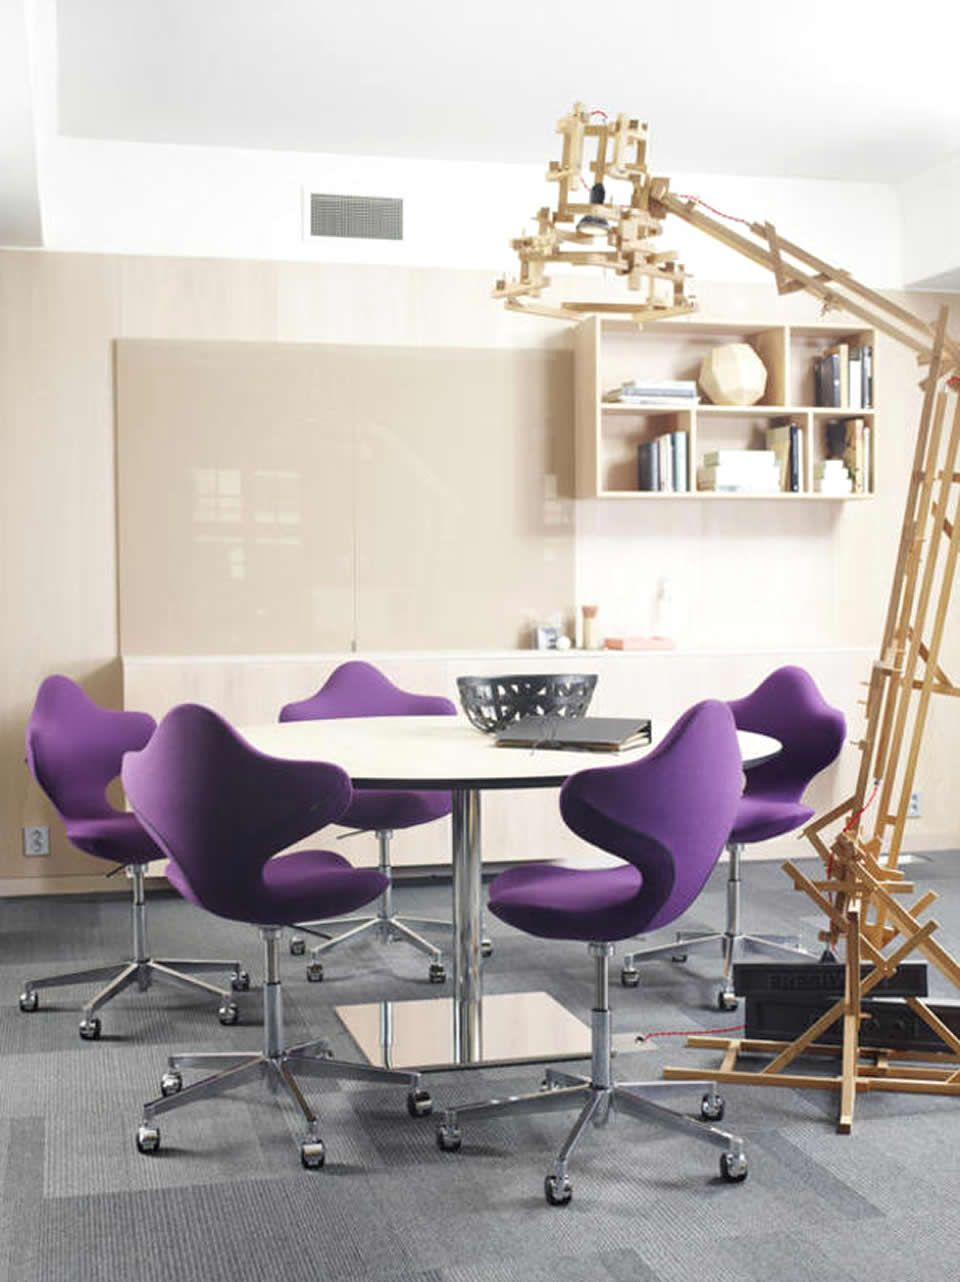 Conference Room Interior Design: Small Office Meeting Room Interior Design With Purple